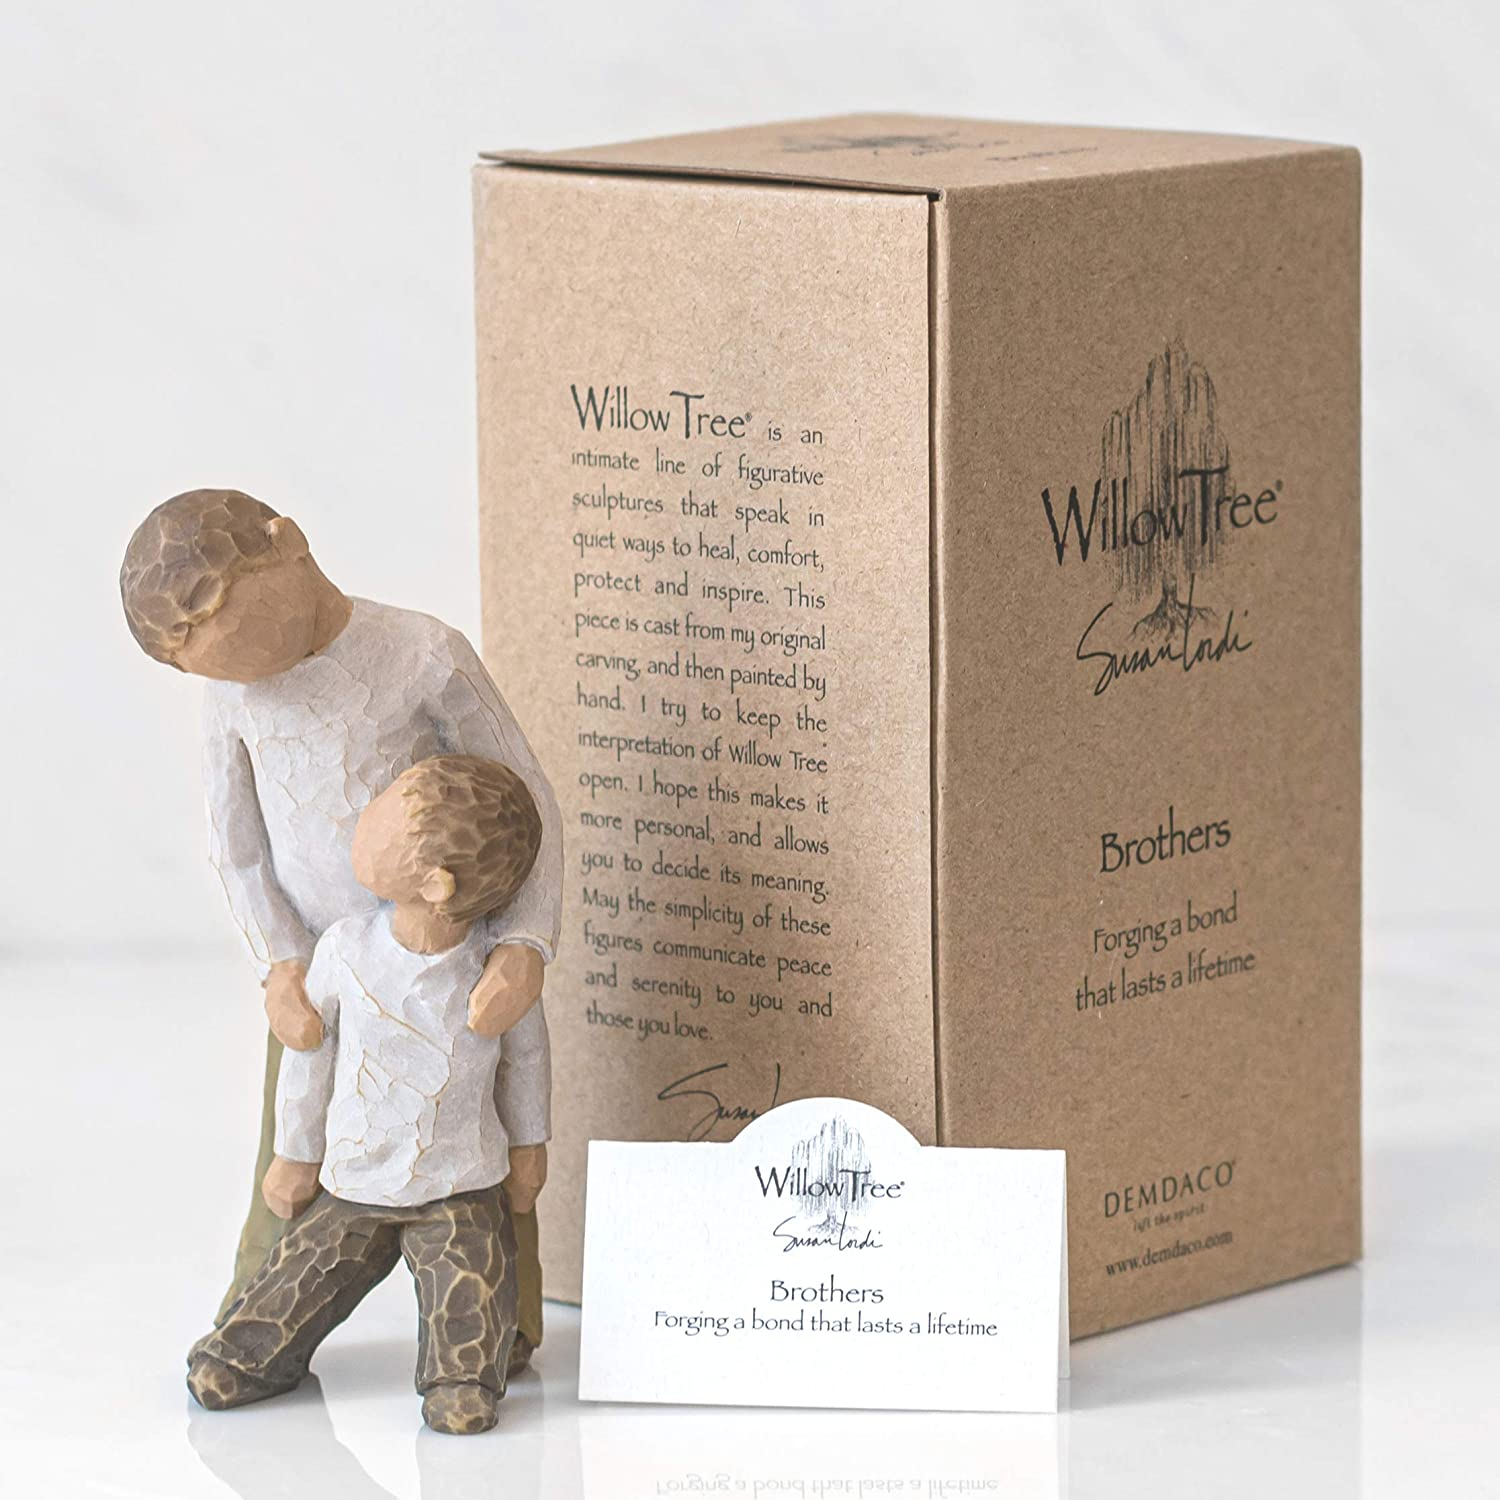 Willow Tree Figure Ornament 26056 BROTHERS Figurine NEW in BOX